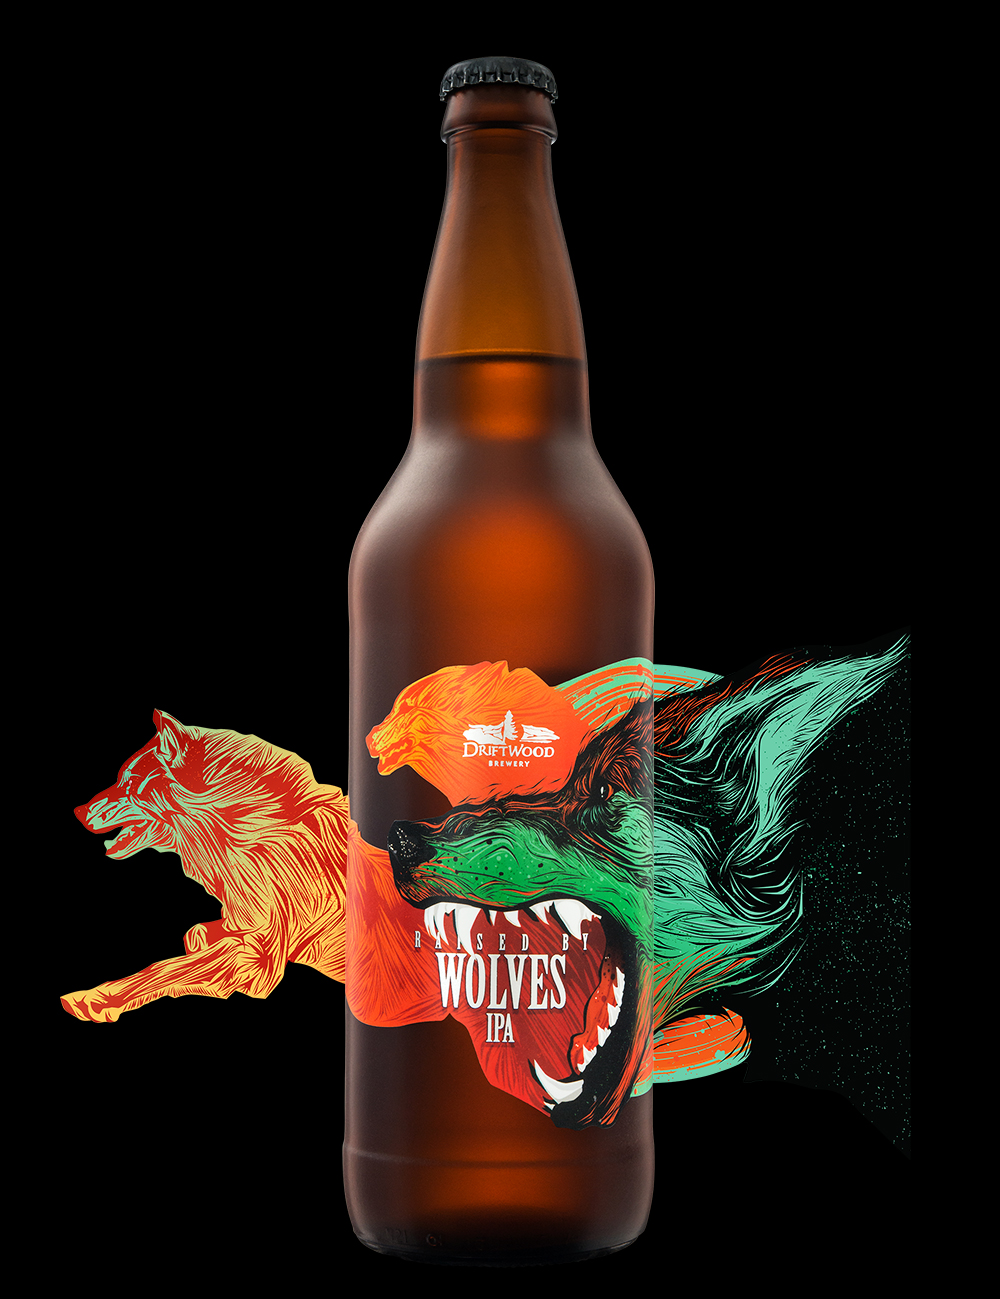 Raised by Wolves Wild IPA